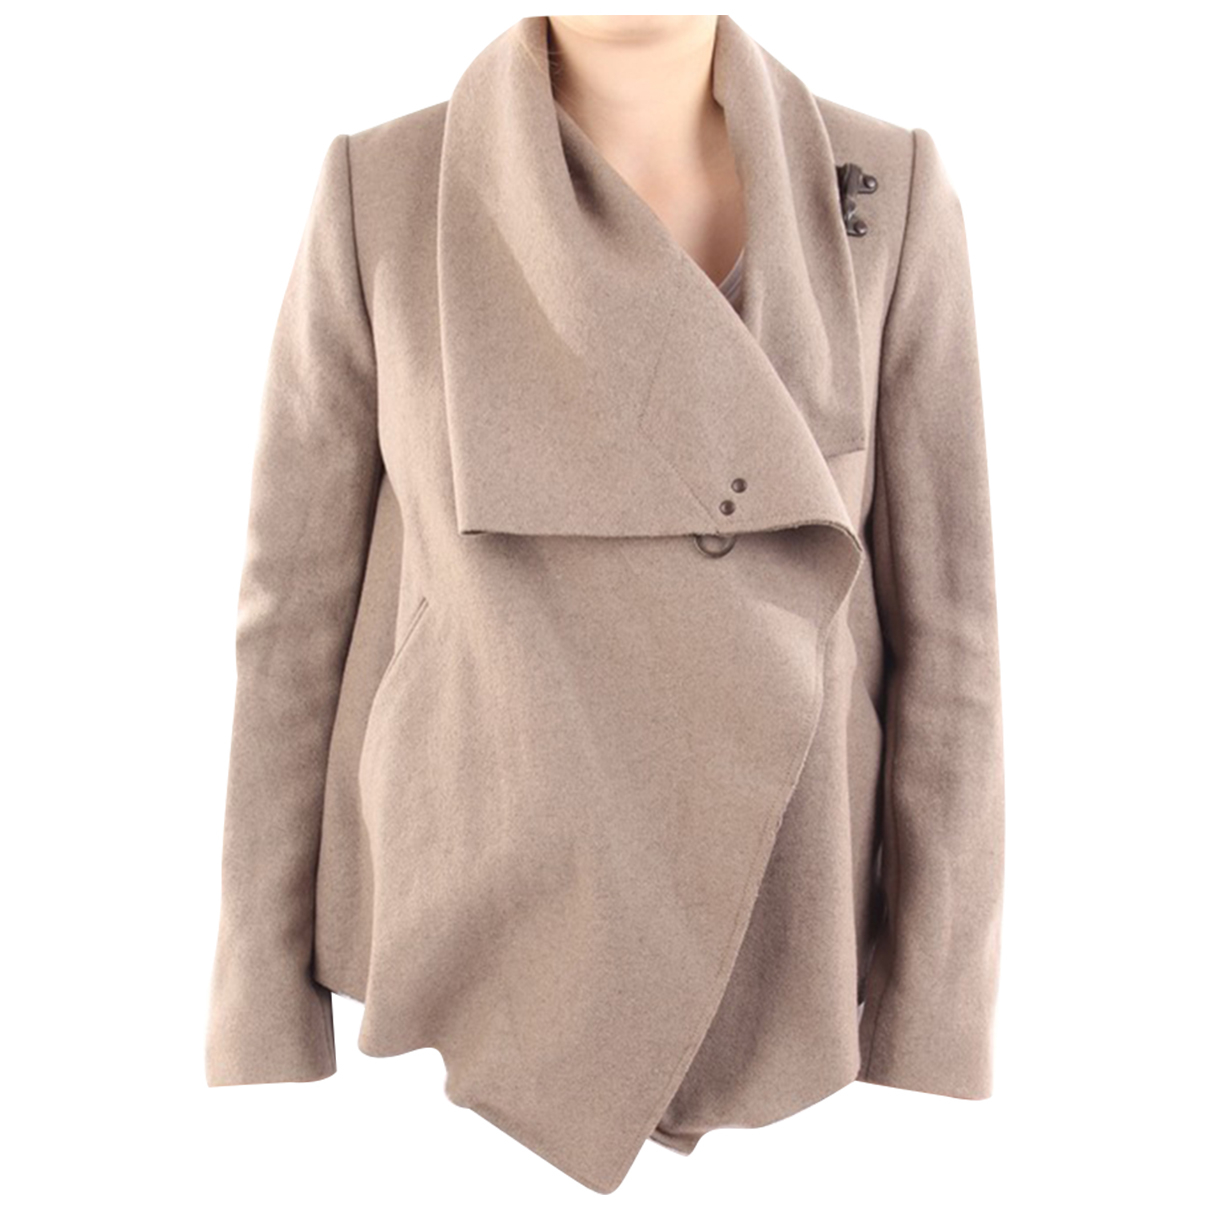 All Saints \N Beige Wool jacket for Women 34 FR